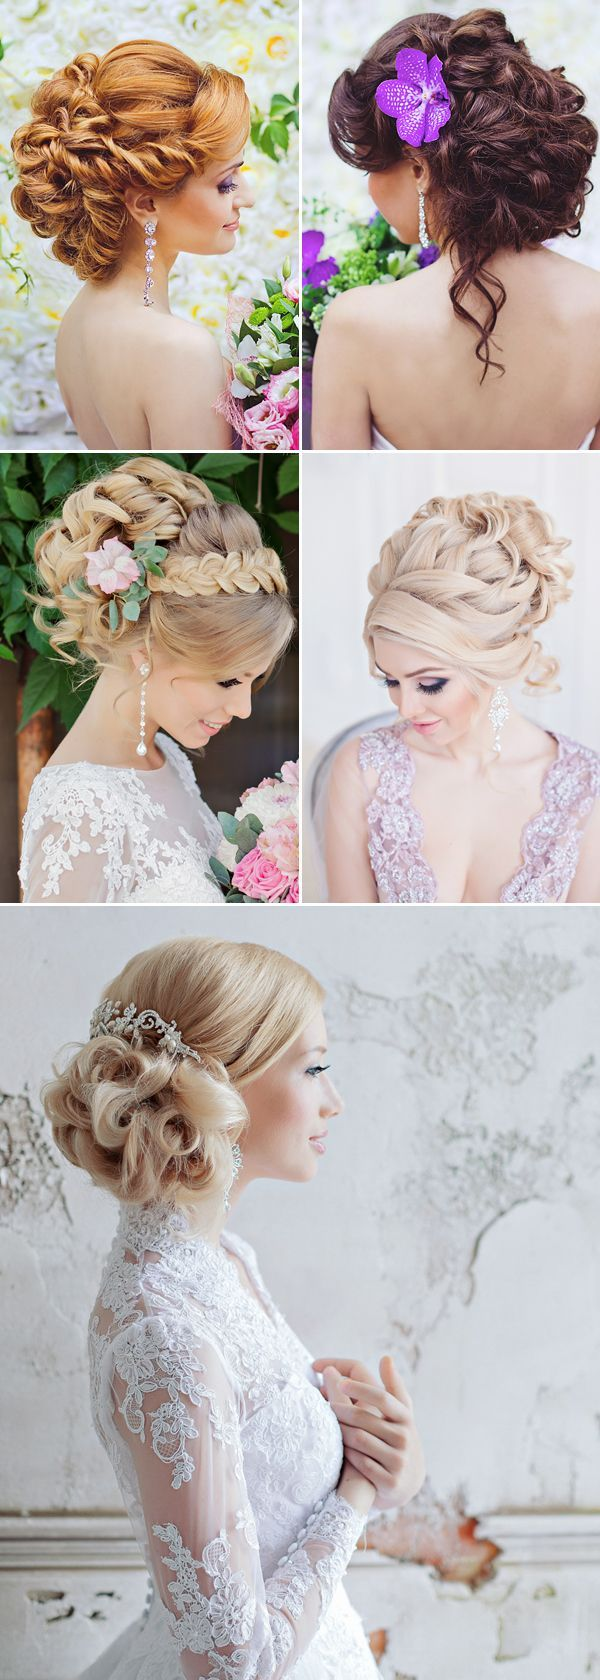 30 Seriously Hairstyles for Weddings (with Tutorial) | Tutorials ...